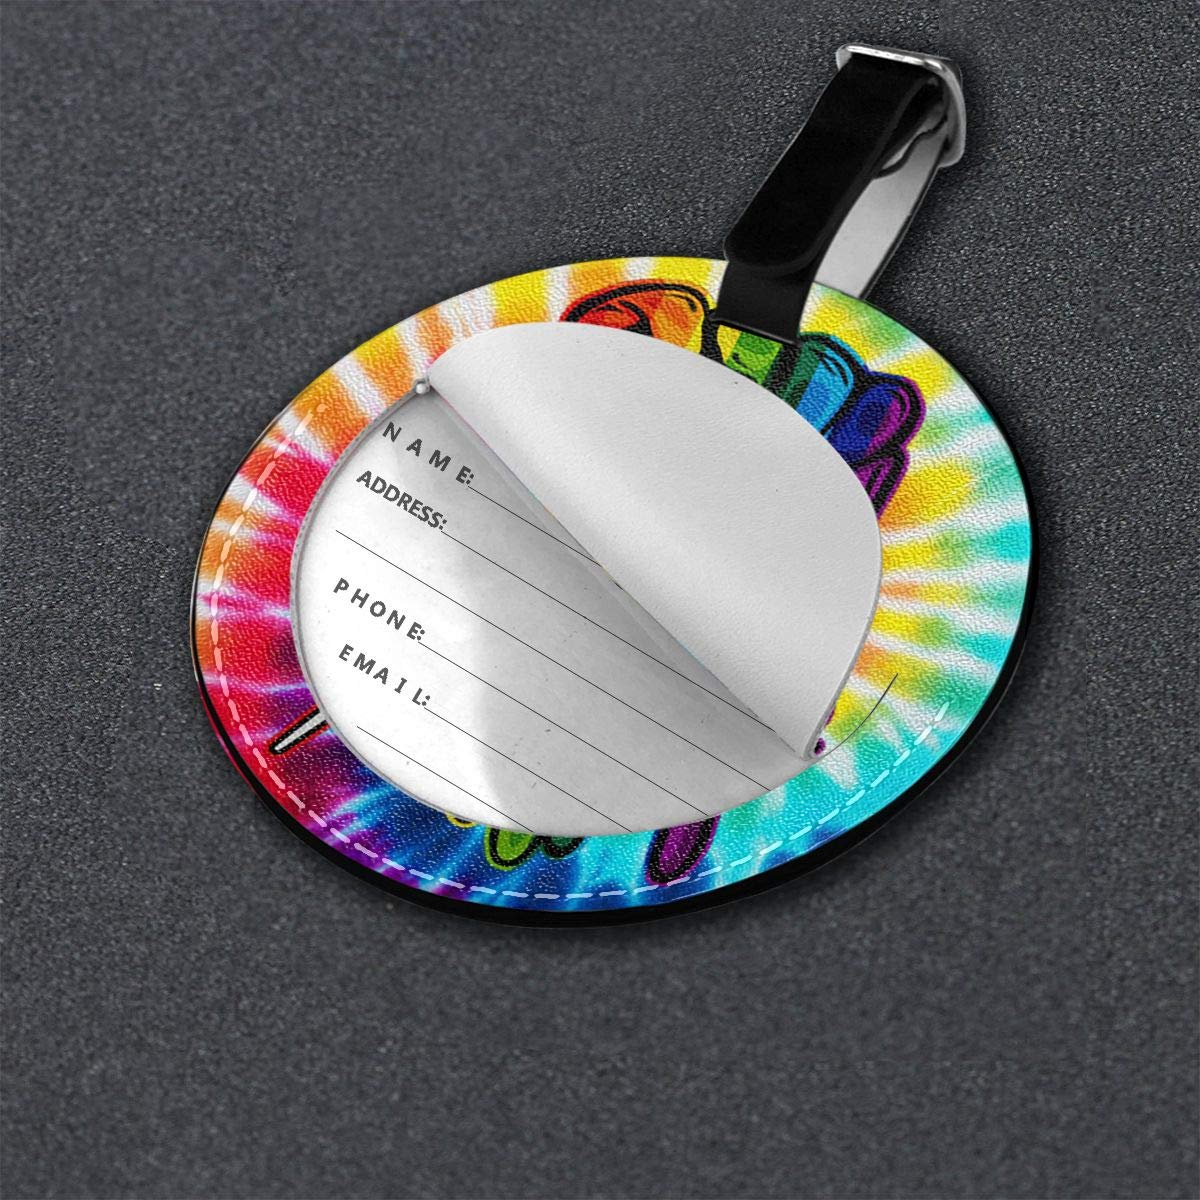 Free-2 Gay Pride Rainbow Fist LGBT Luggage Tag 3D Print Leather Travel Bag ID Card